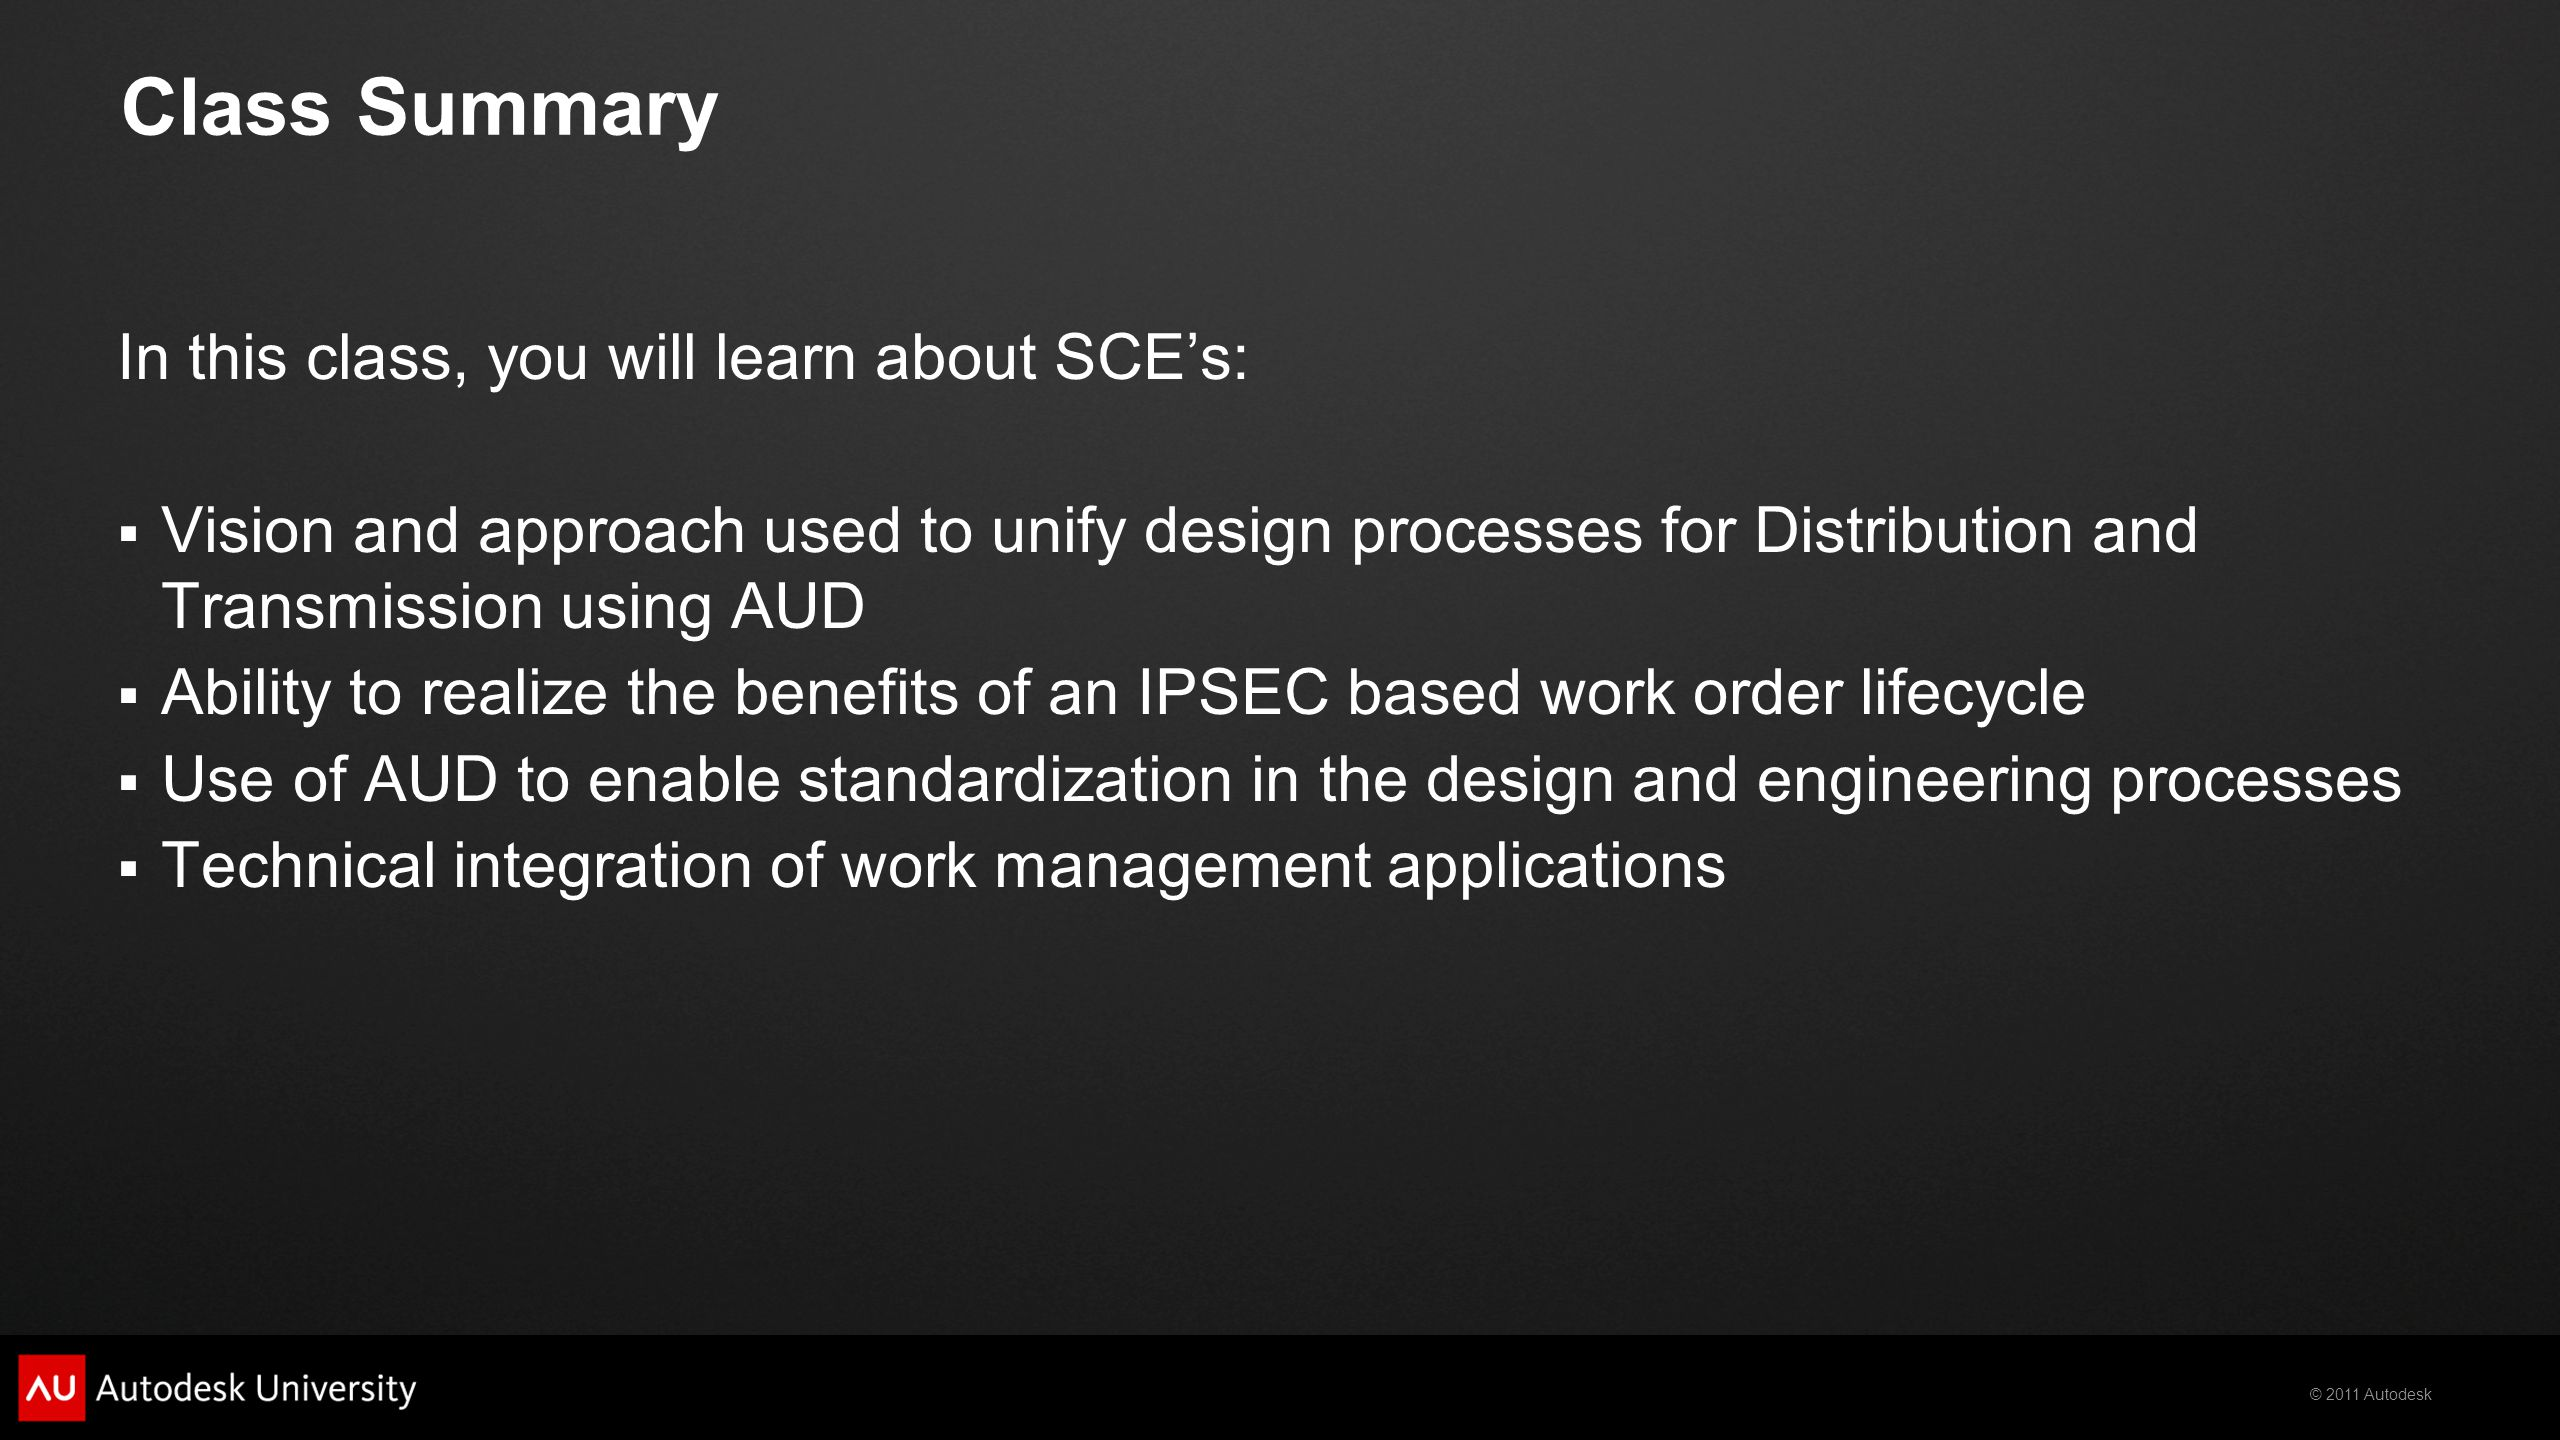 © 2011 Autodesk Learning Objectives At the end of this class, you will:  See how AUD can fit into an integrated suite of work management tools  Understand SCE's solution to many workflow challenges faced in the design process  Apply lessons learned from SCE s AUD & ERP implementation